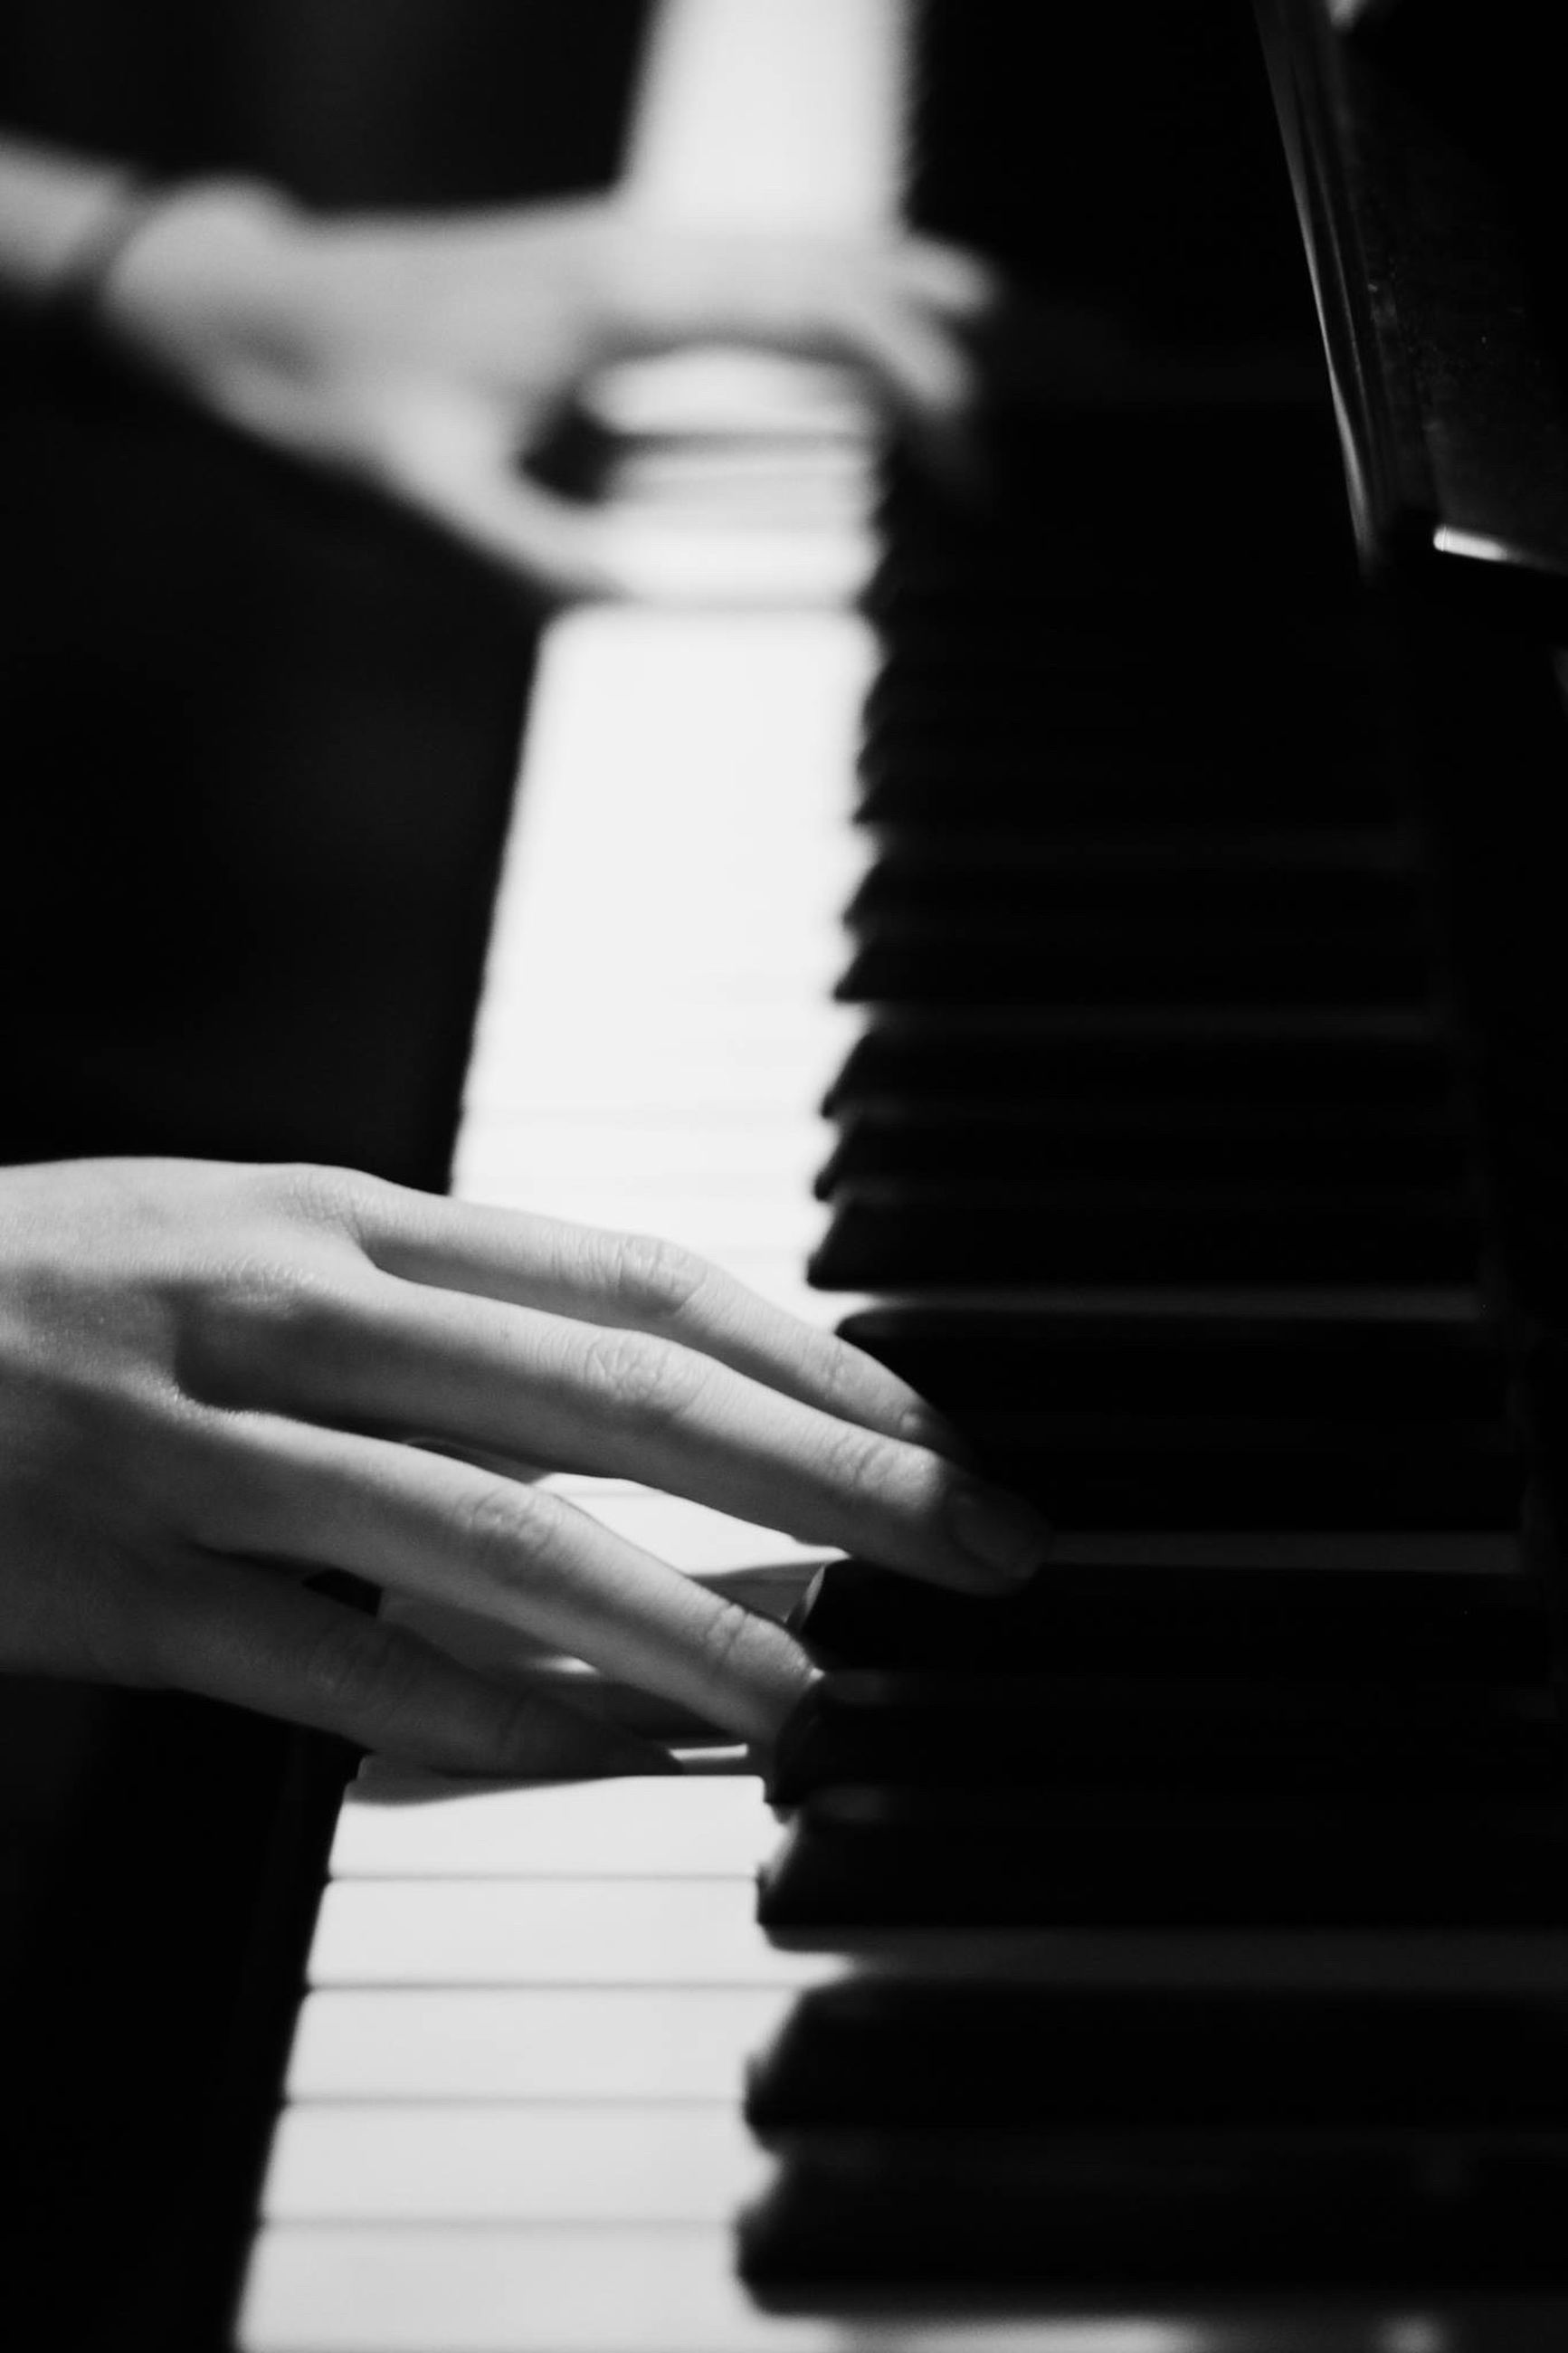 person, indoors, part of, human finger, cropped, holding, music, musical instrument, piano, close-up, piano key, selective focus, unrecognizable person, lifestyles, men, focus on foreground, musical equipment